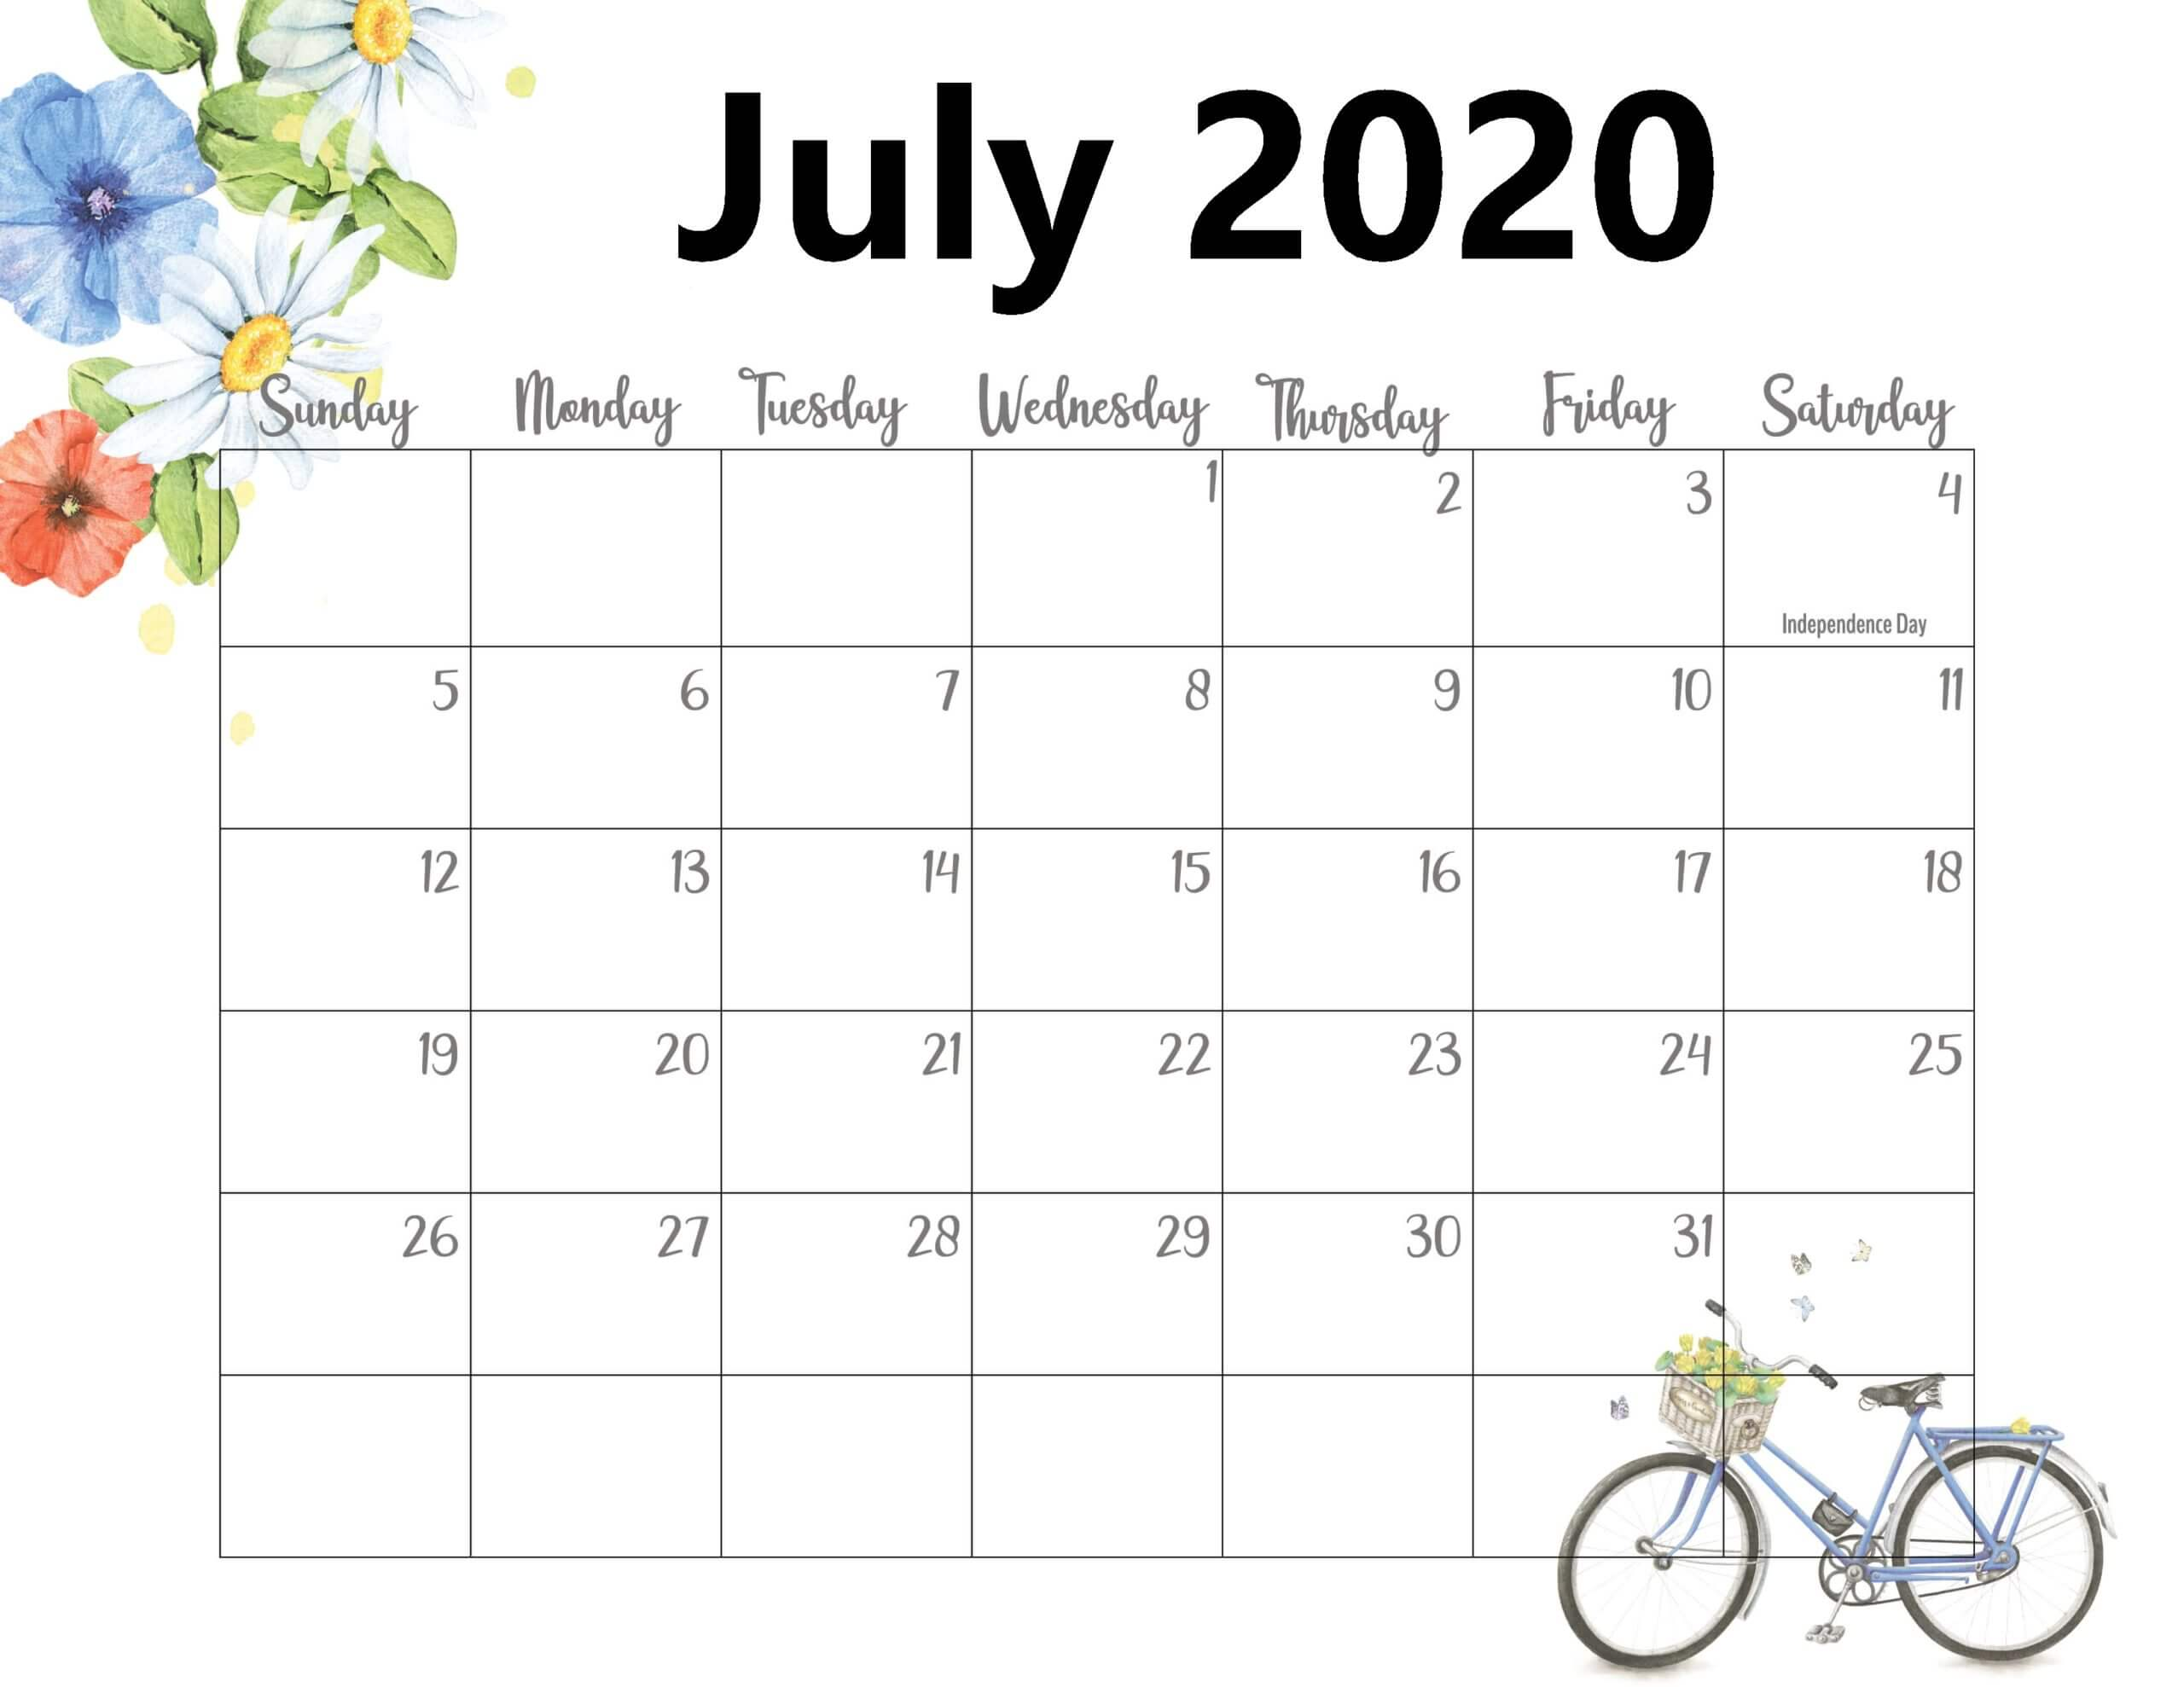 July 2020 Calendar With Holidays Layout